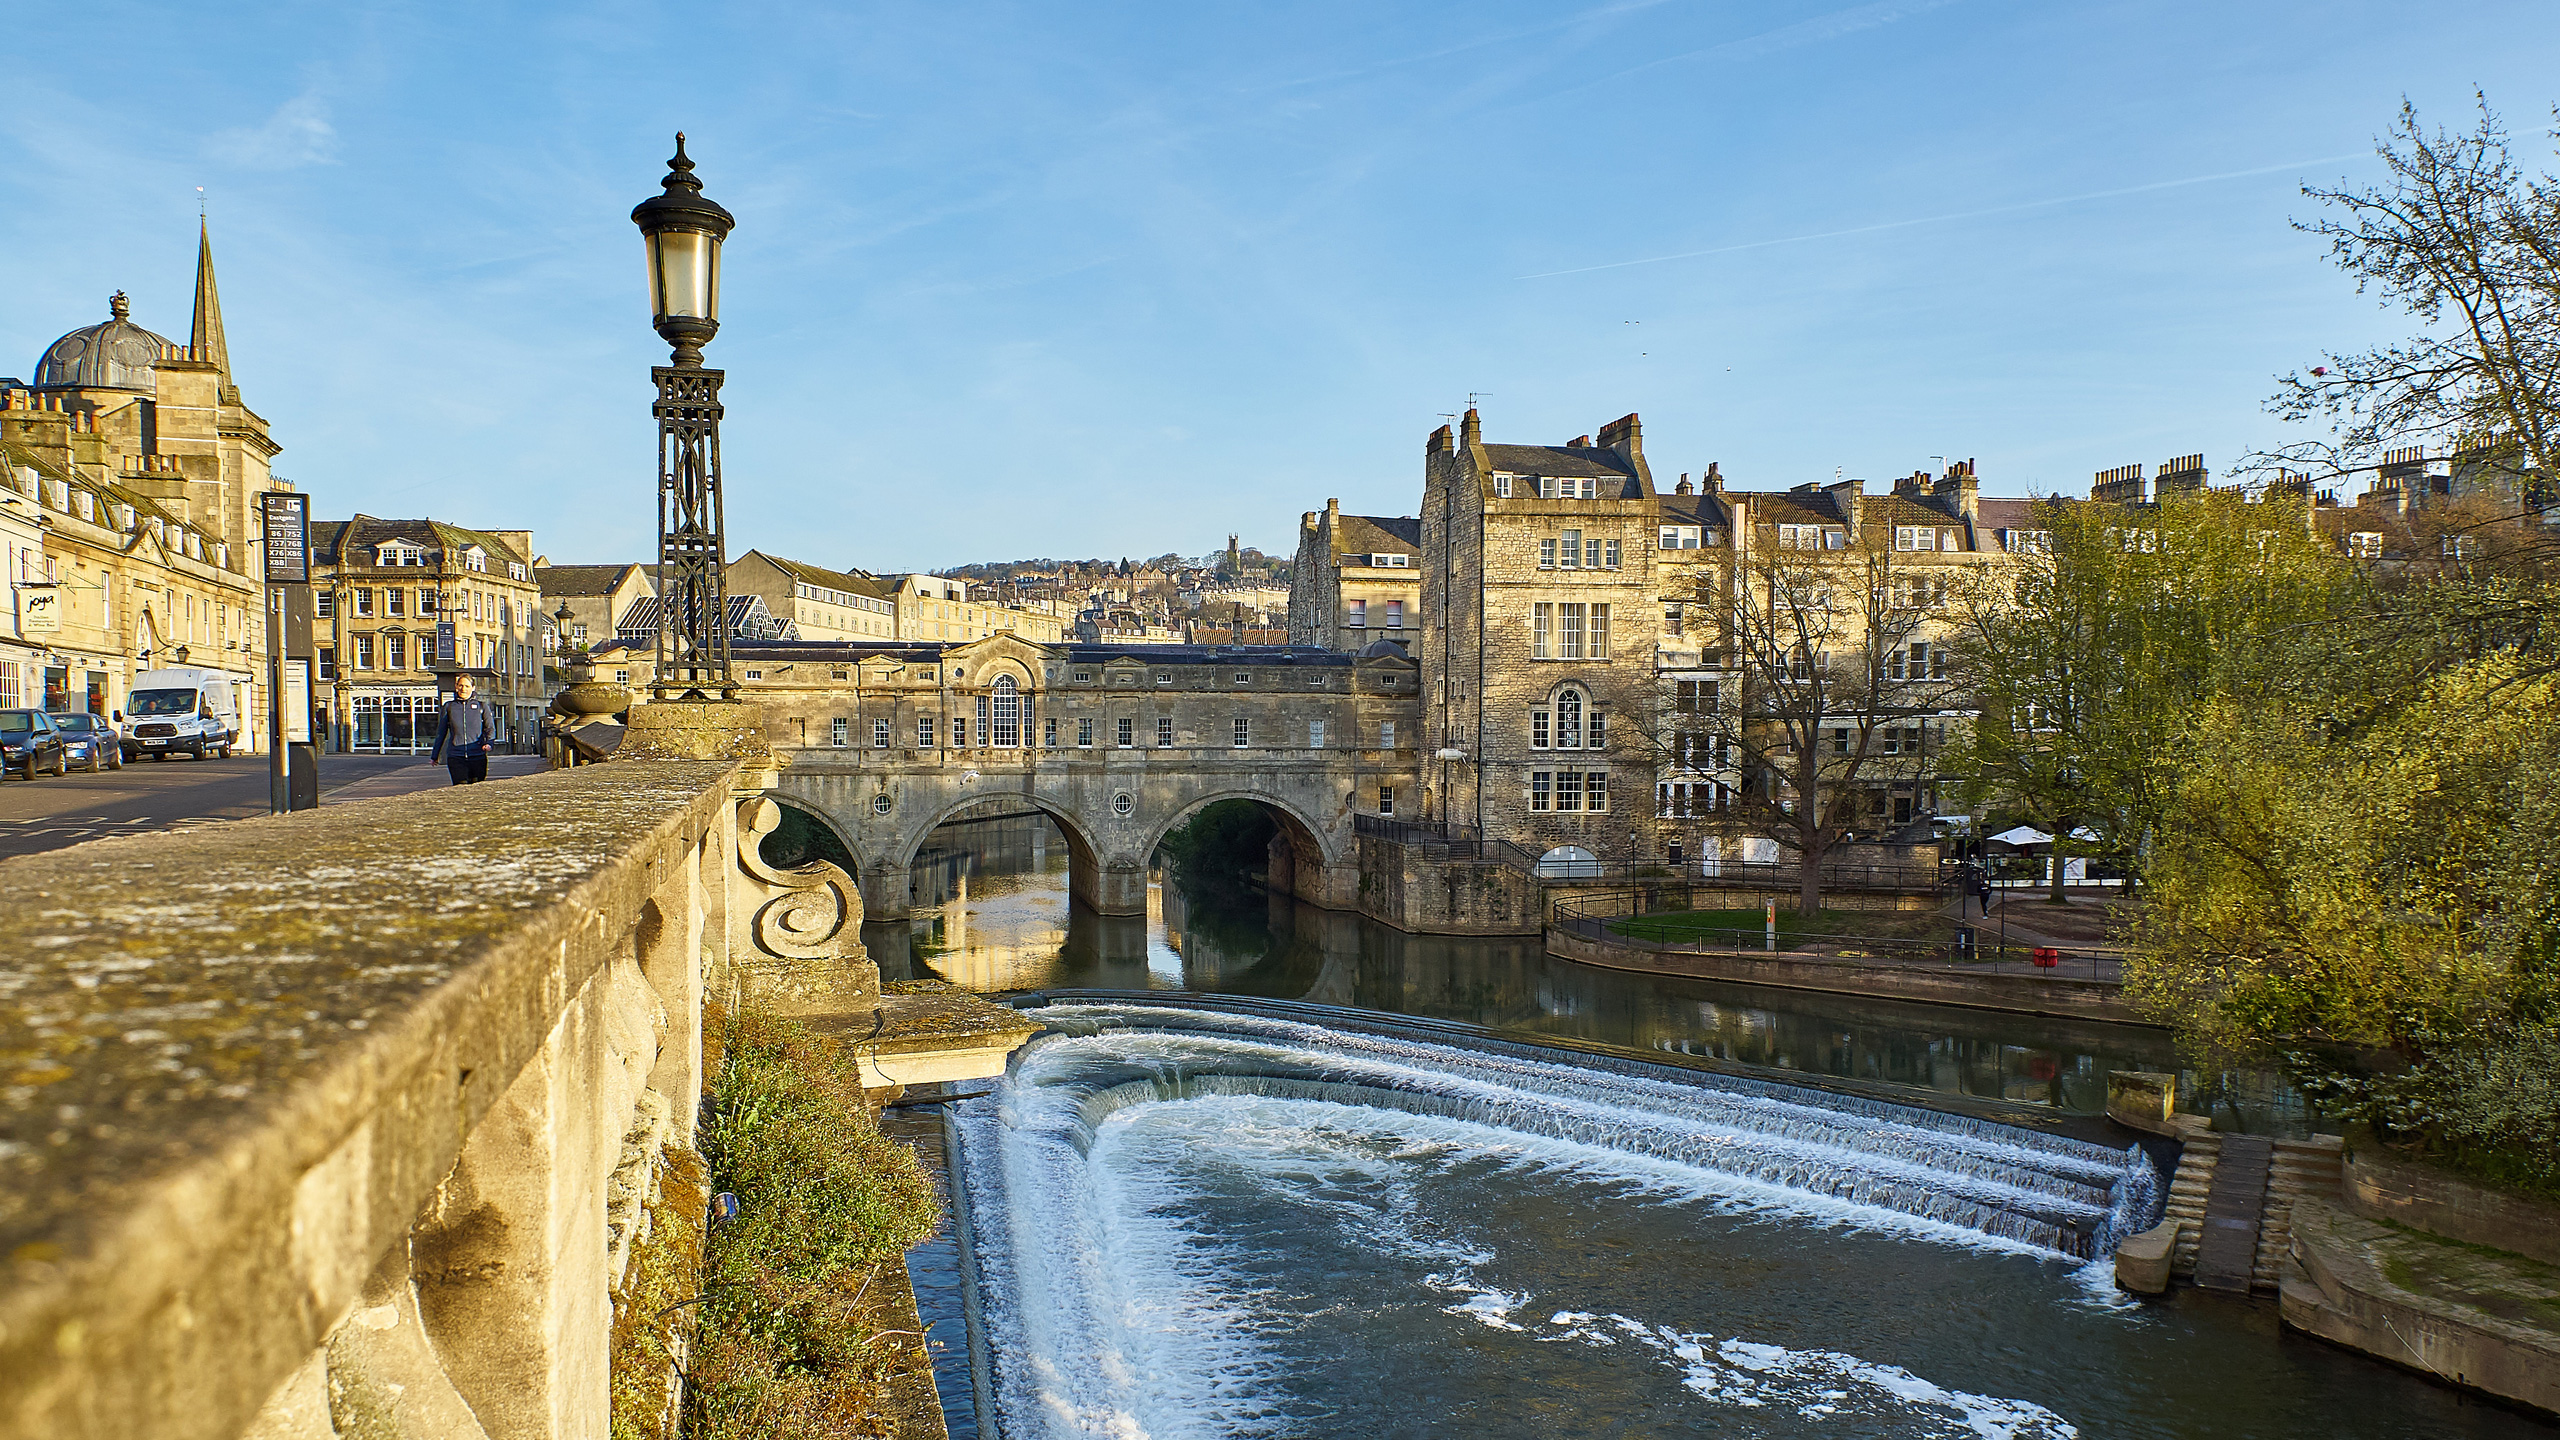 View of the Weir and Pulteney Bridge in Bath